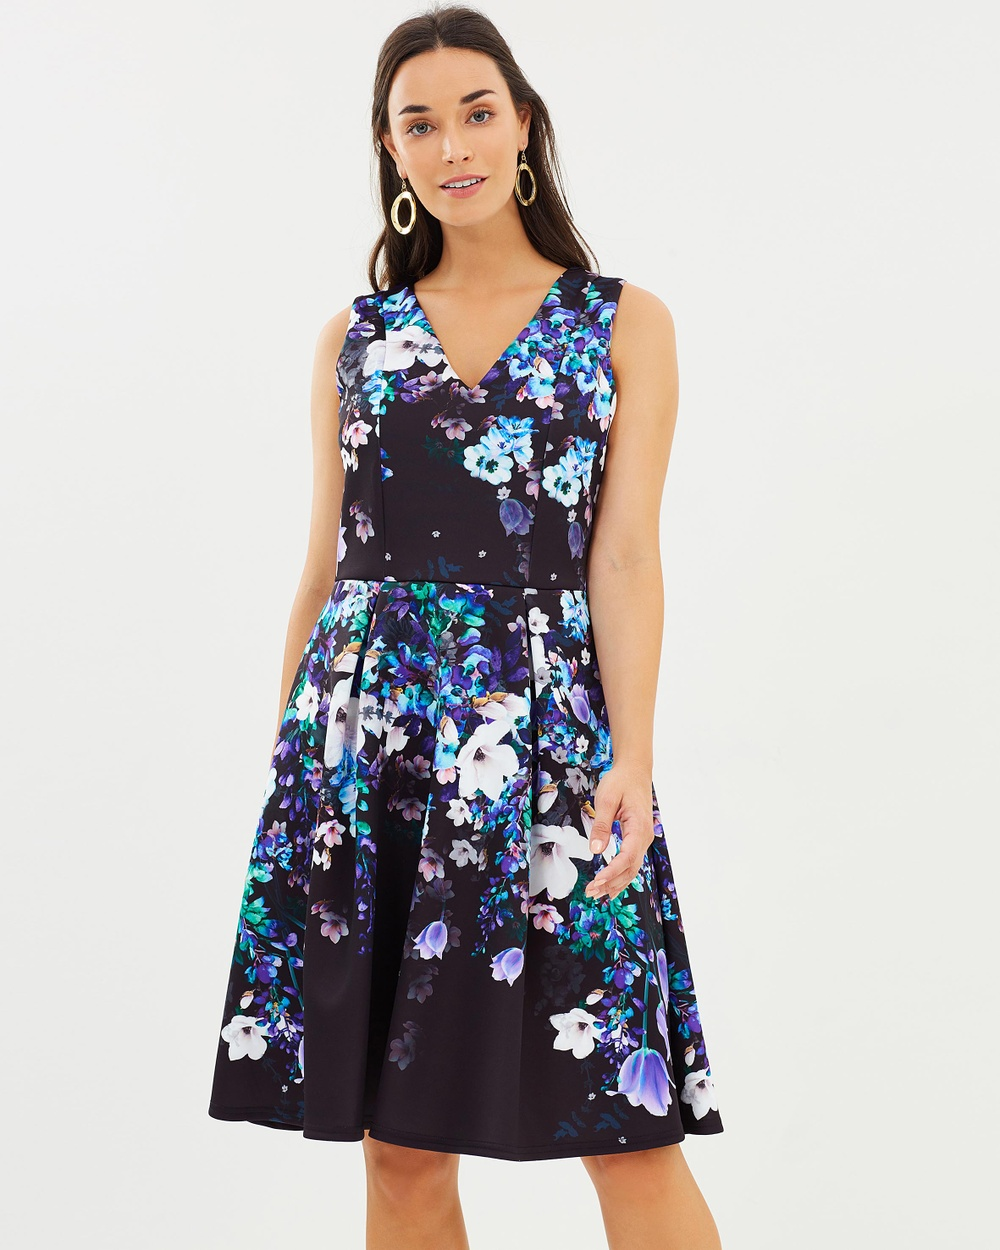 Wallis Floral Blossom Scuba Dress Printed Dresses Navy Blue Floral Blossom Scuba Dress